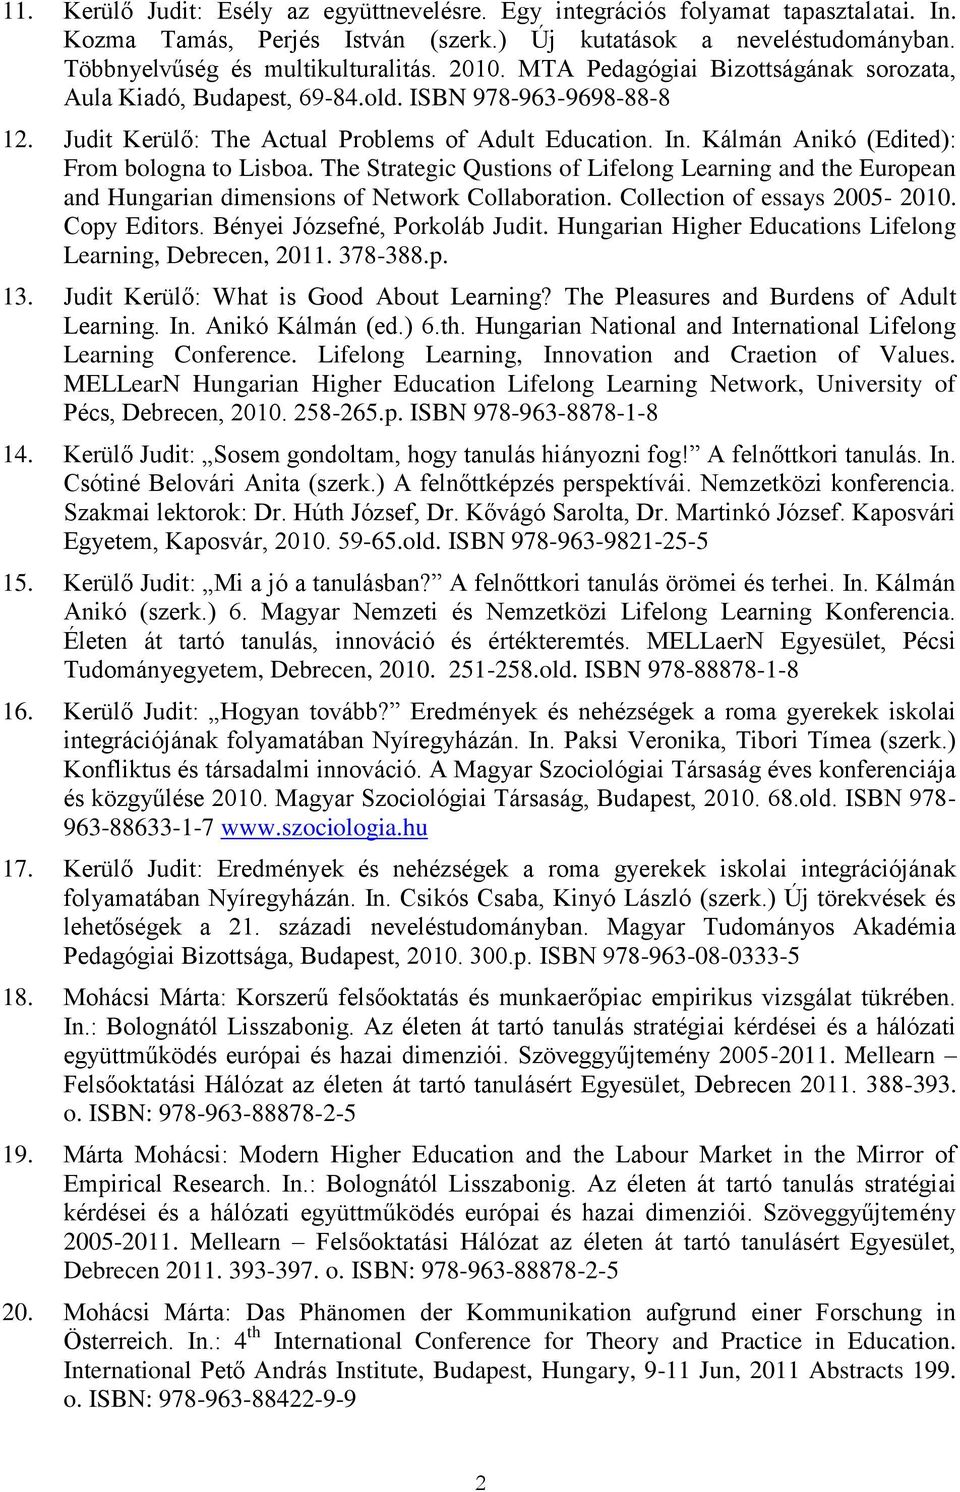 Kálmán Anikó (Edited): From bologna to Lisboa. The Strategic Qustions of Lifelong Learning and the European and Hungarian dimensions of Network Collaboration. Collection of essays 2005-2010.